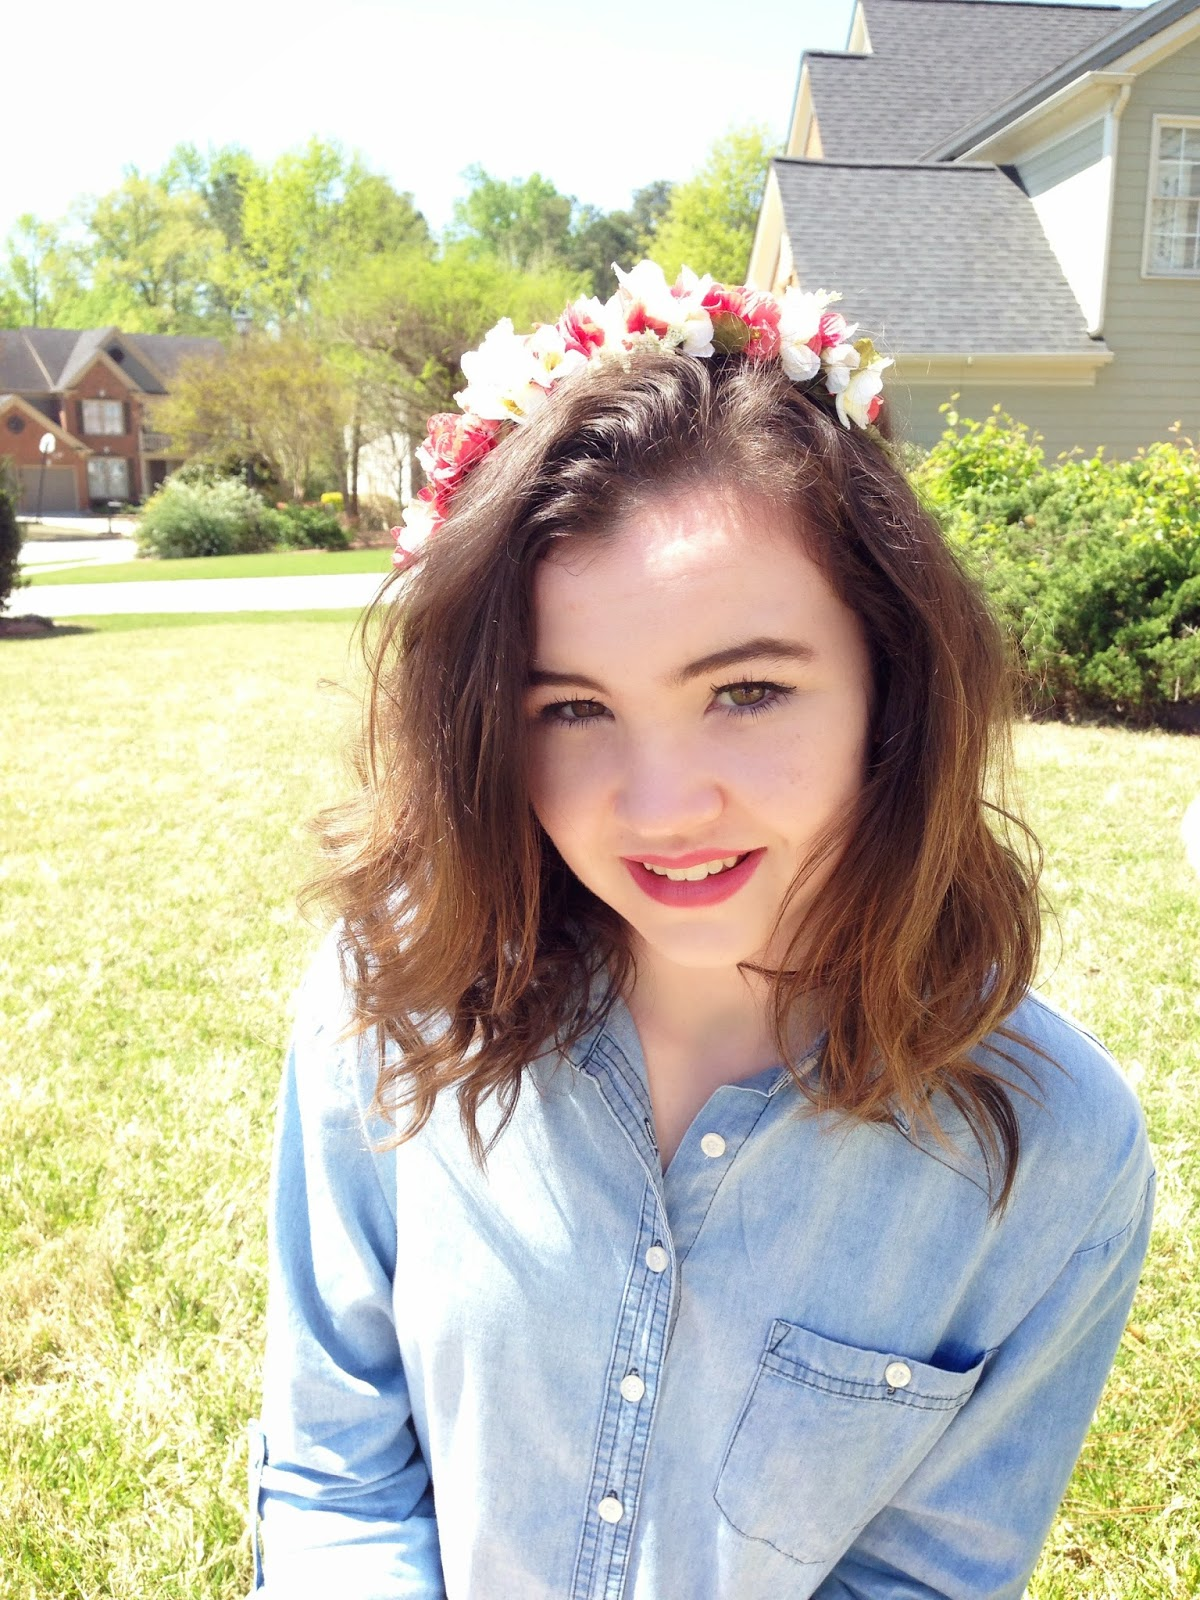 Emilyann having a handcrafted crown is the best alternative to wearing real flowers in your hair izmirmasajfo